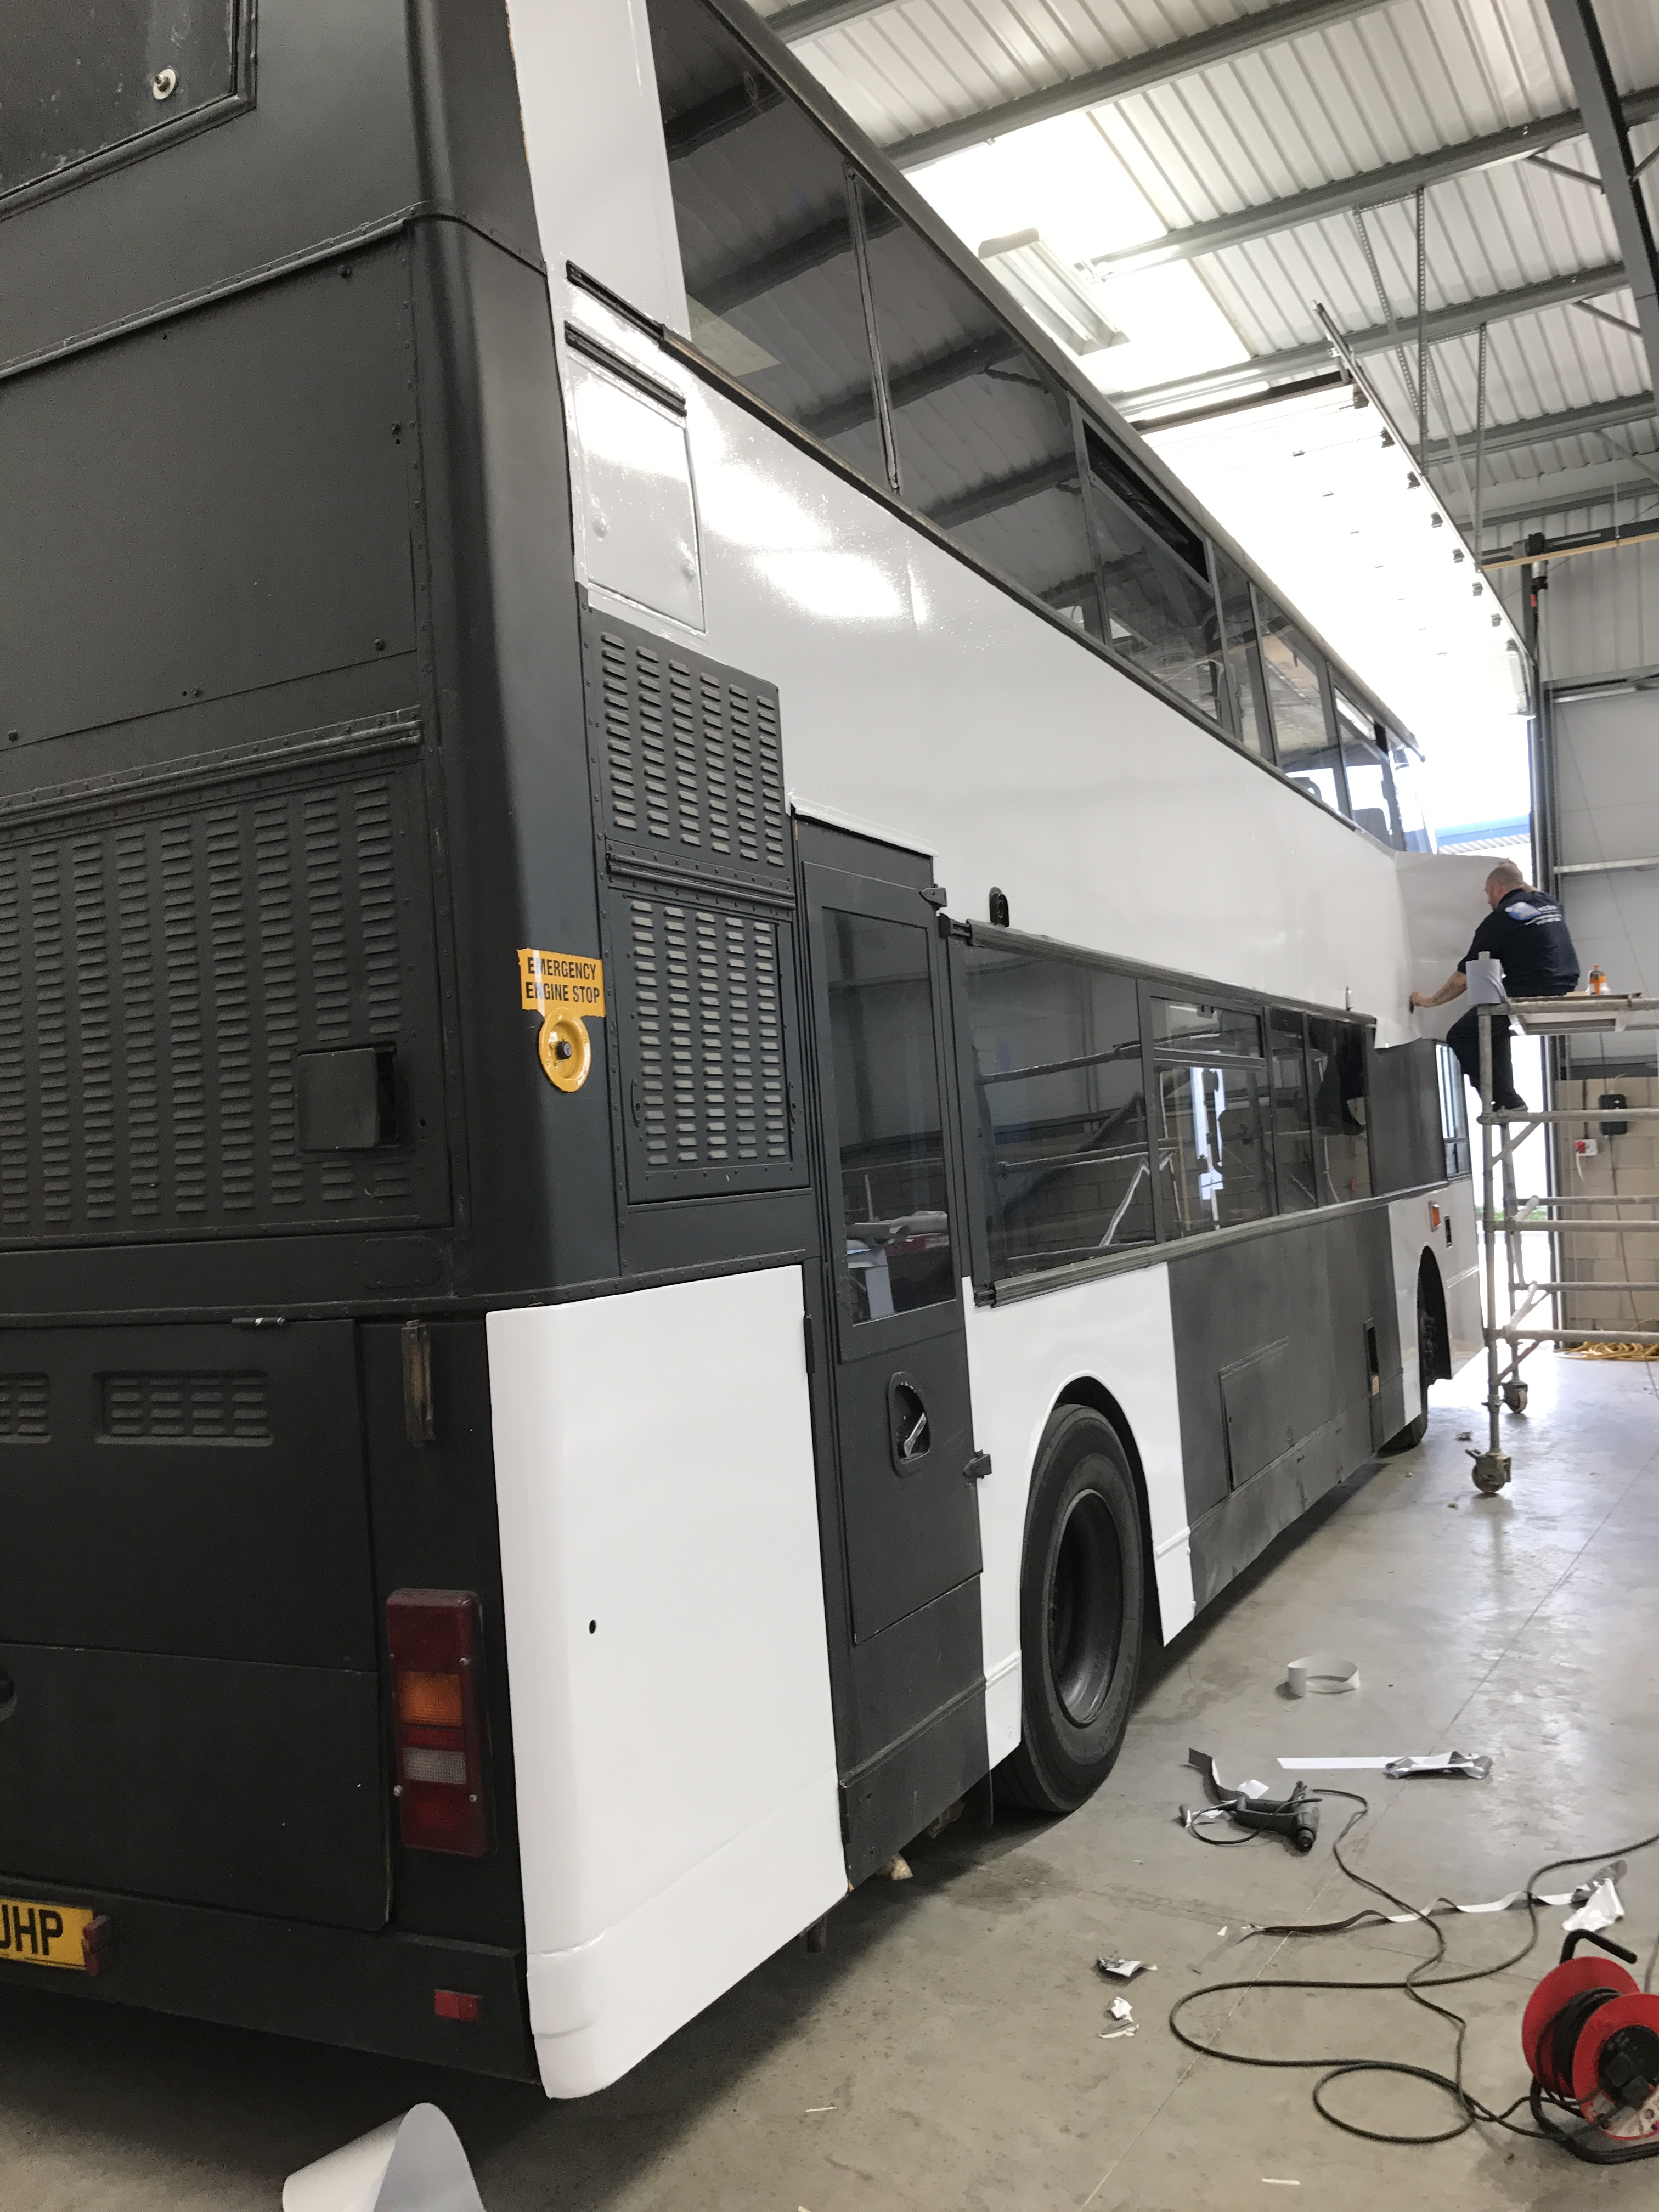 Huge Media Fitter Wrapping a Double Decker